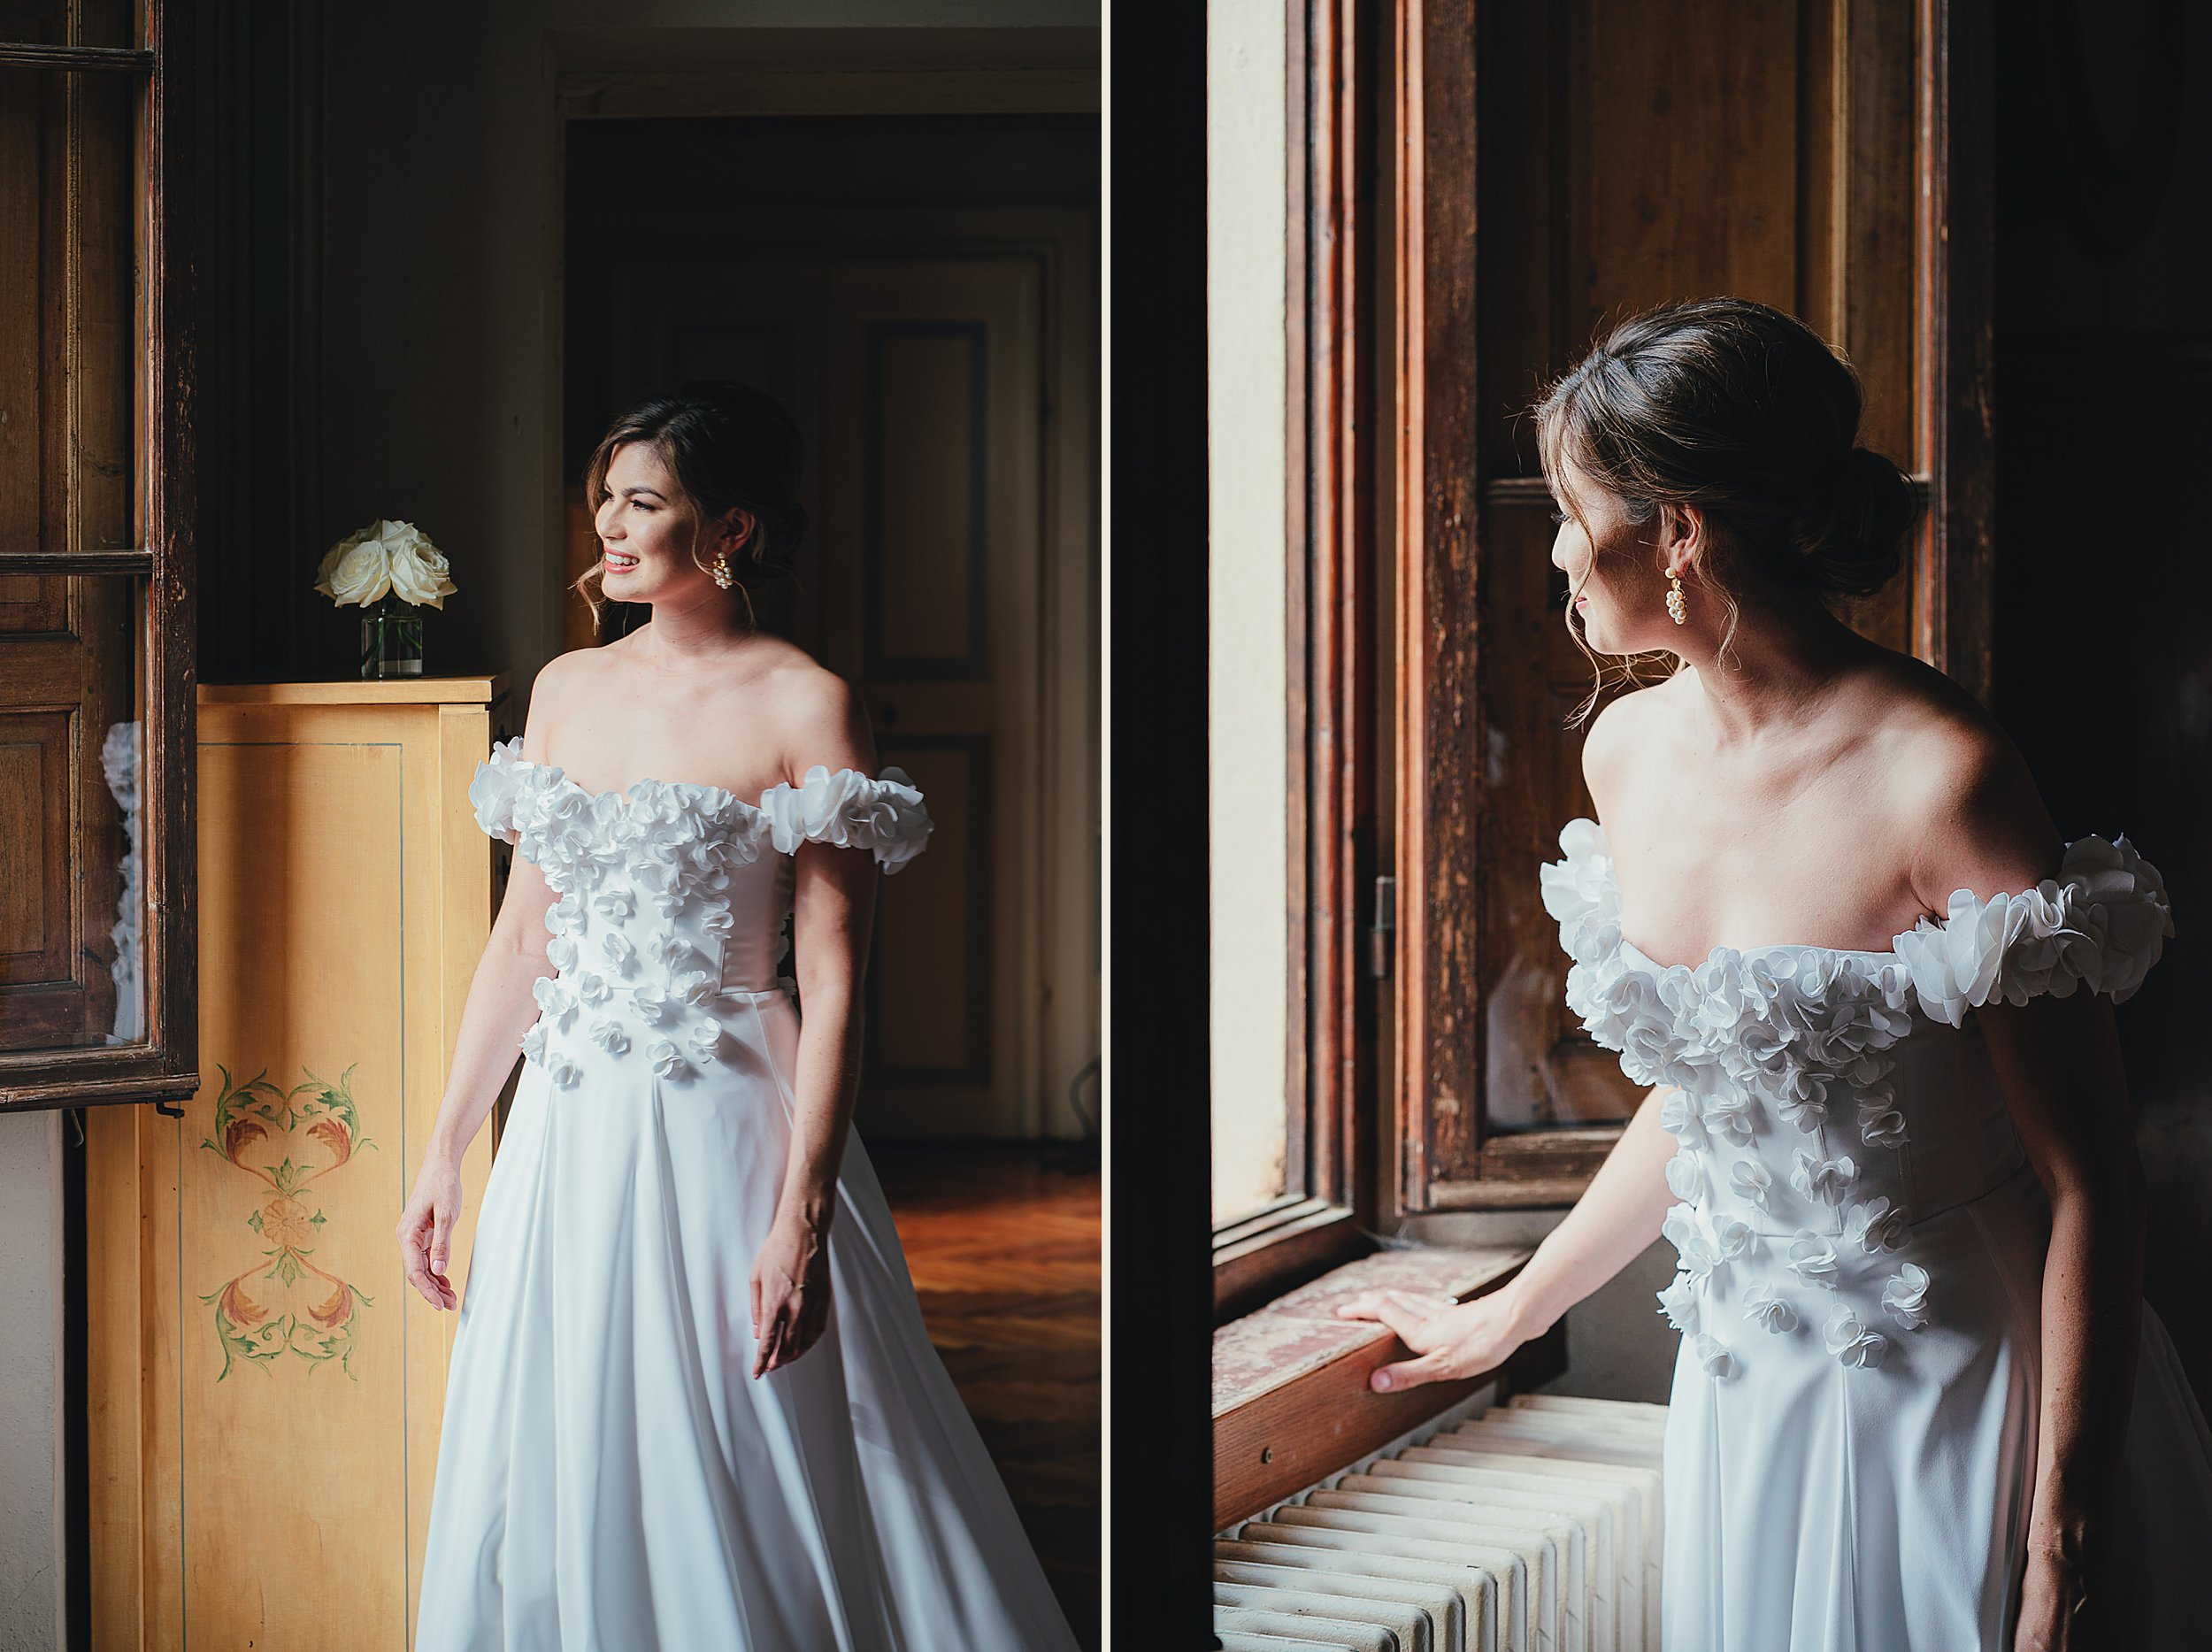 Tuscan Villa Wedding - Portraits of the Bride